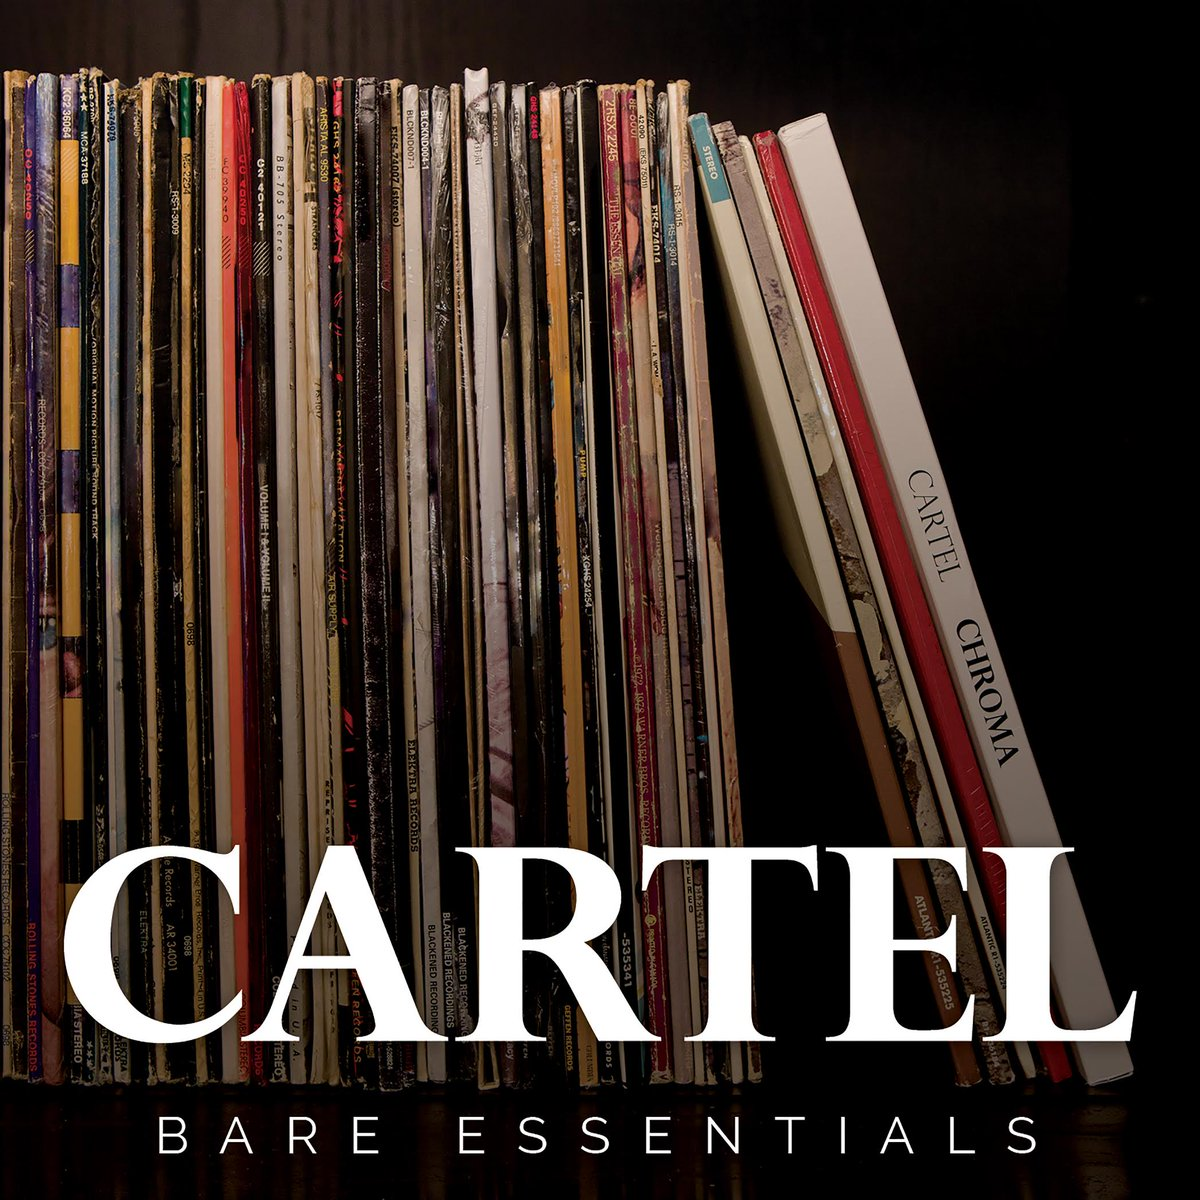 Happy to announce we'll be releasing an acoustic record, Bare Essentials, on 12/21! Details- https://t.co/nGeIkdn2rE https://t.co/yhO6lxah1T